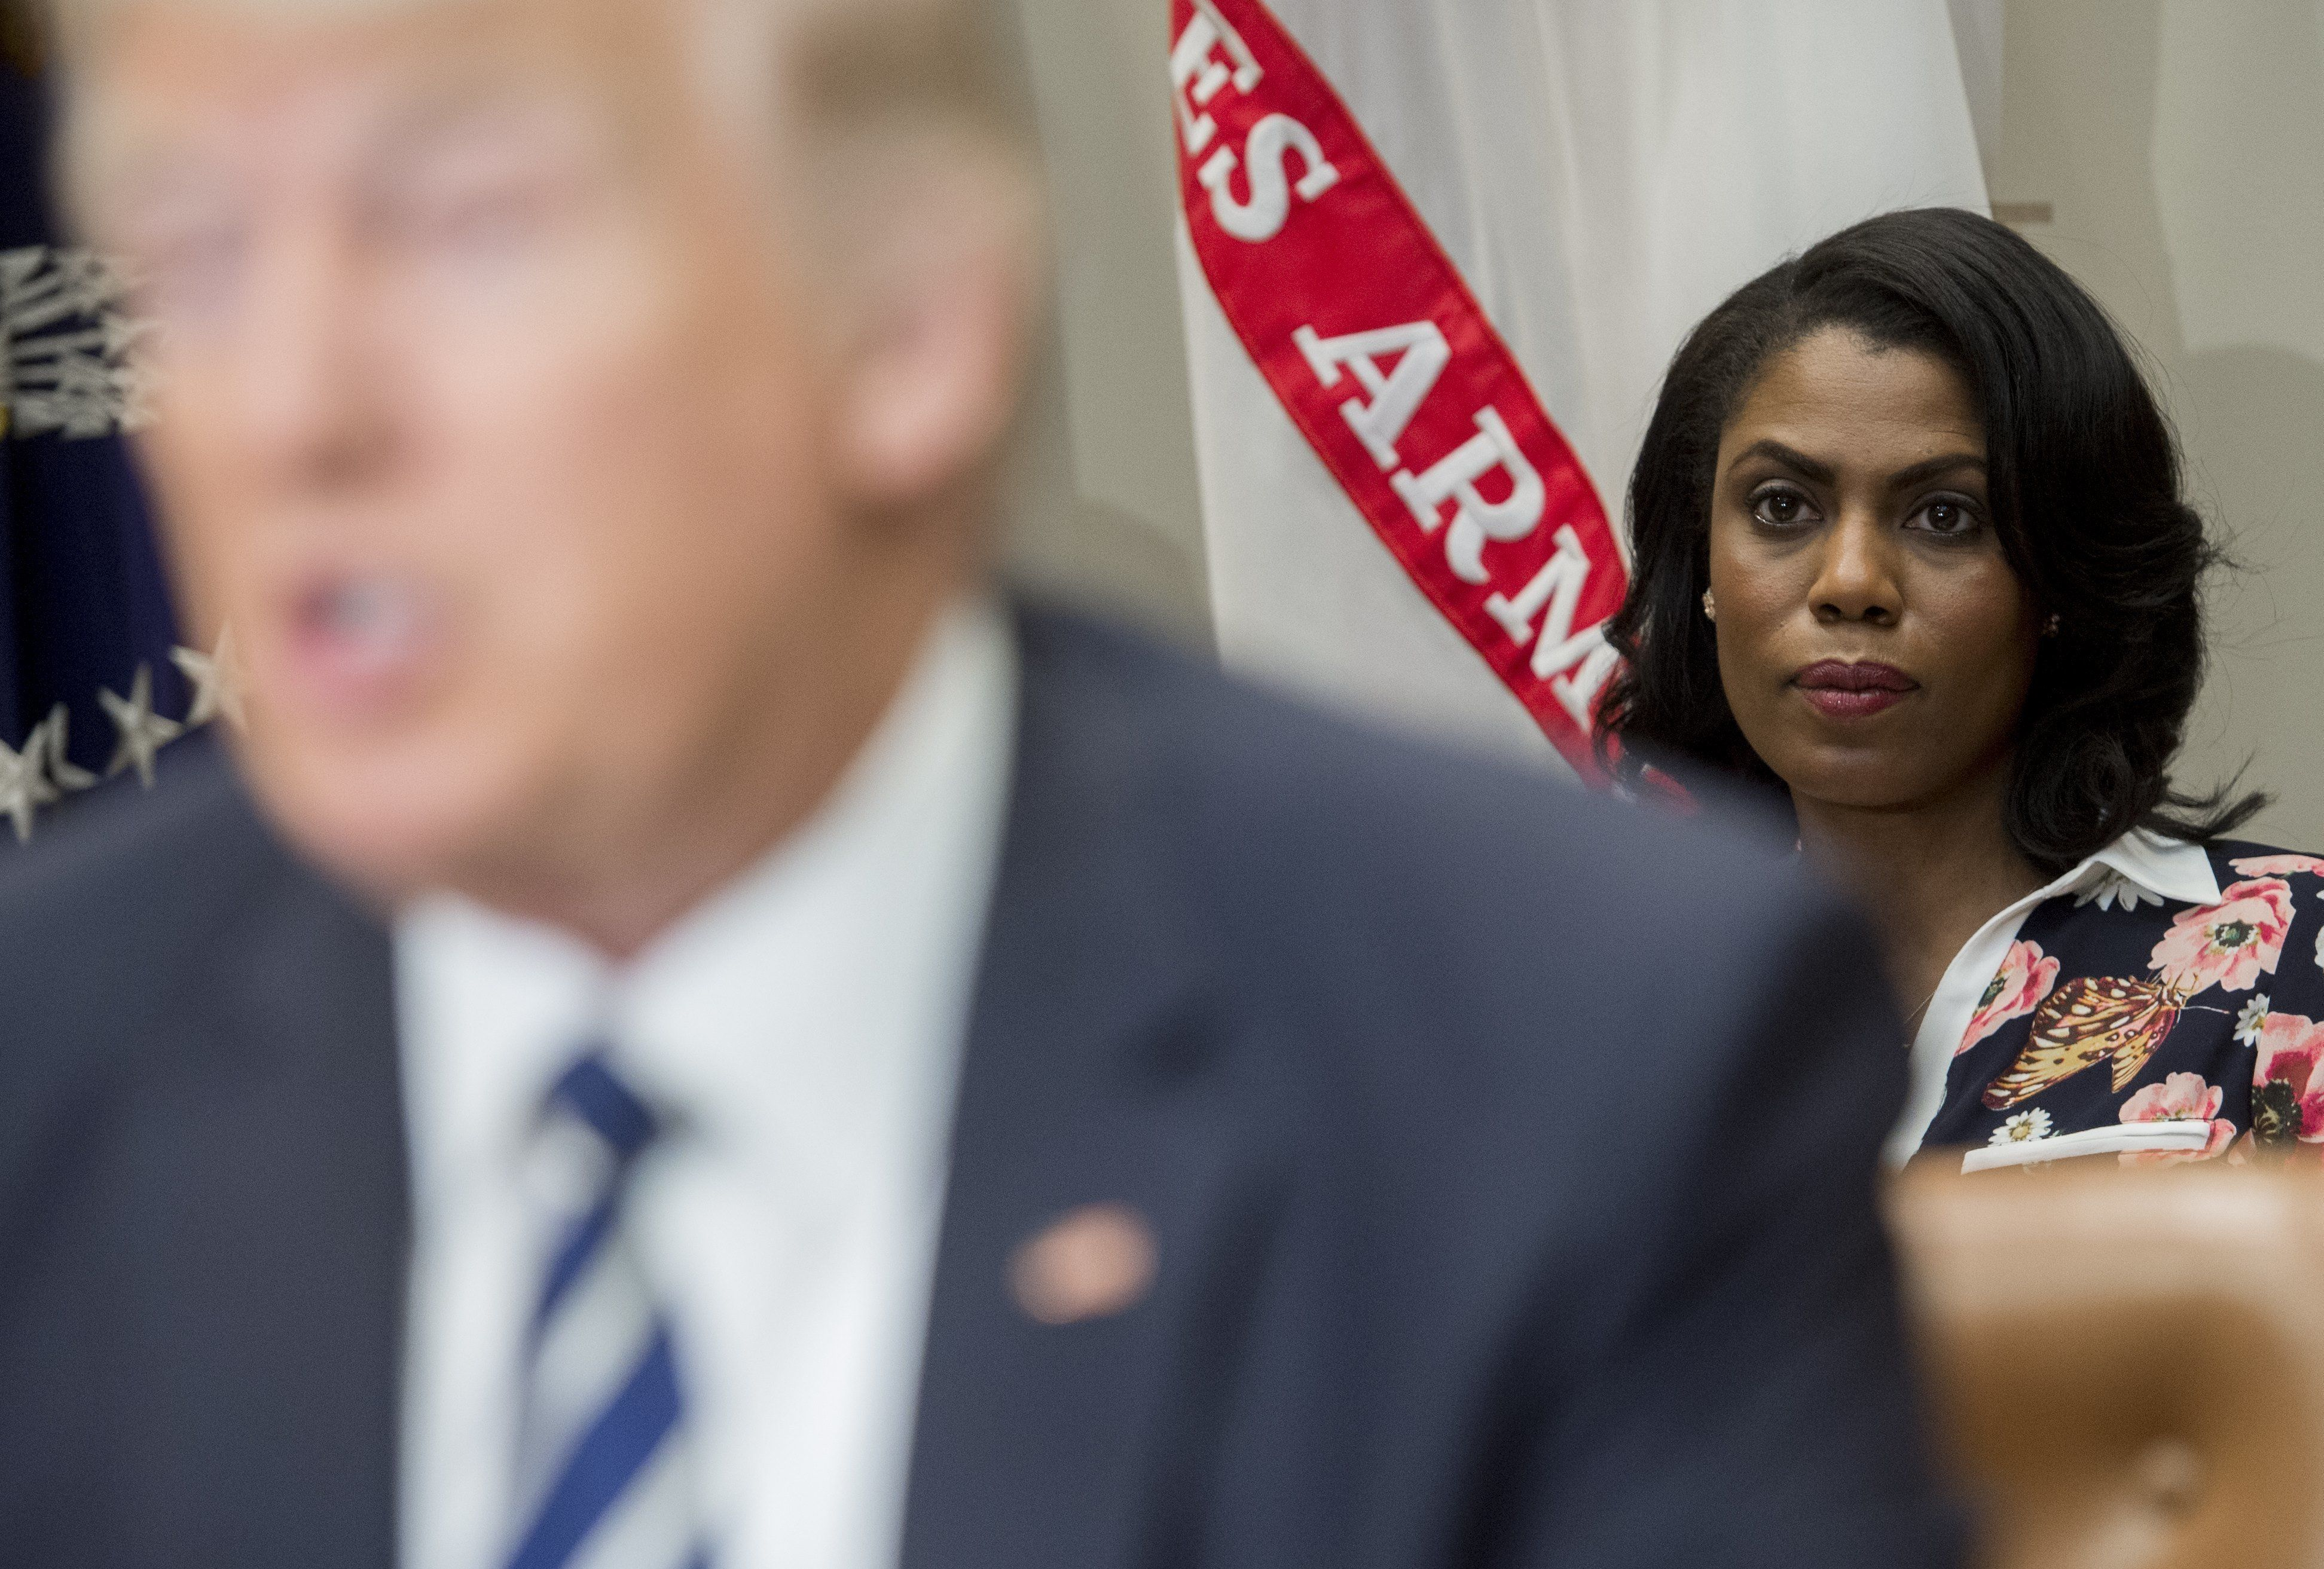 Omarosa Claims Trump Repeatedly Used 'N-Word' During 'The